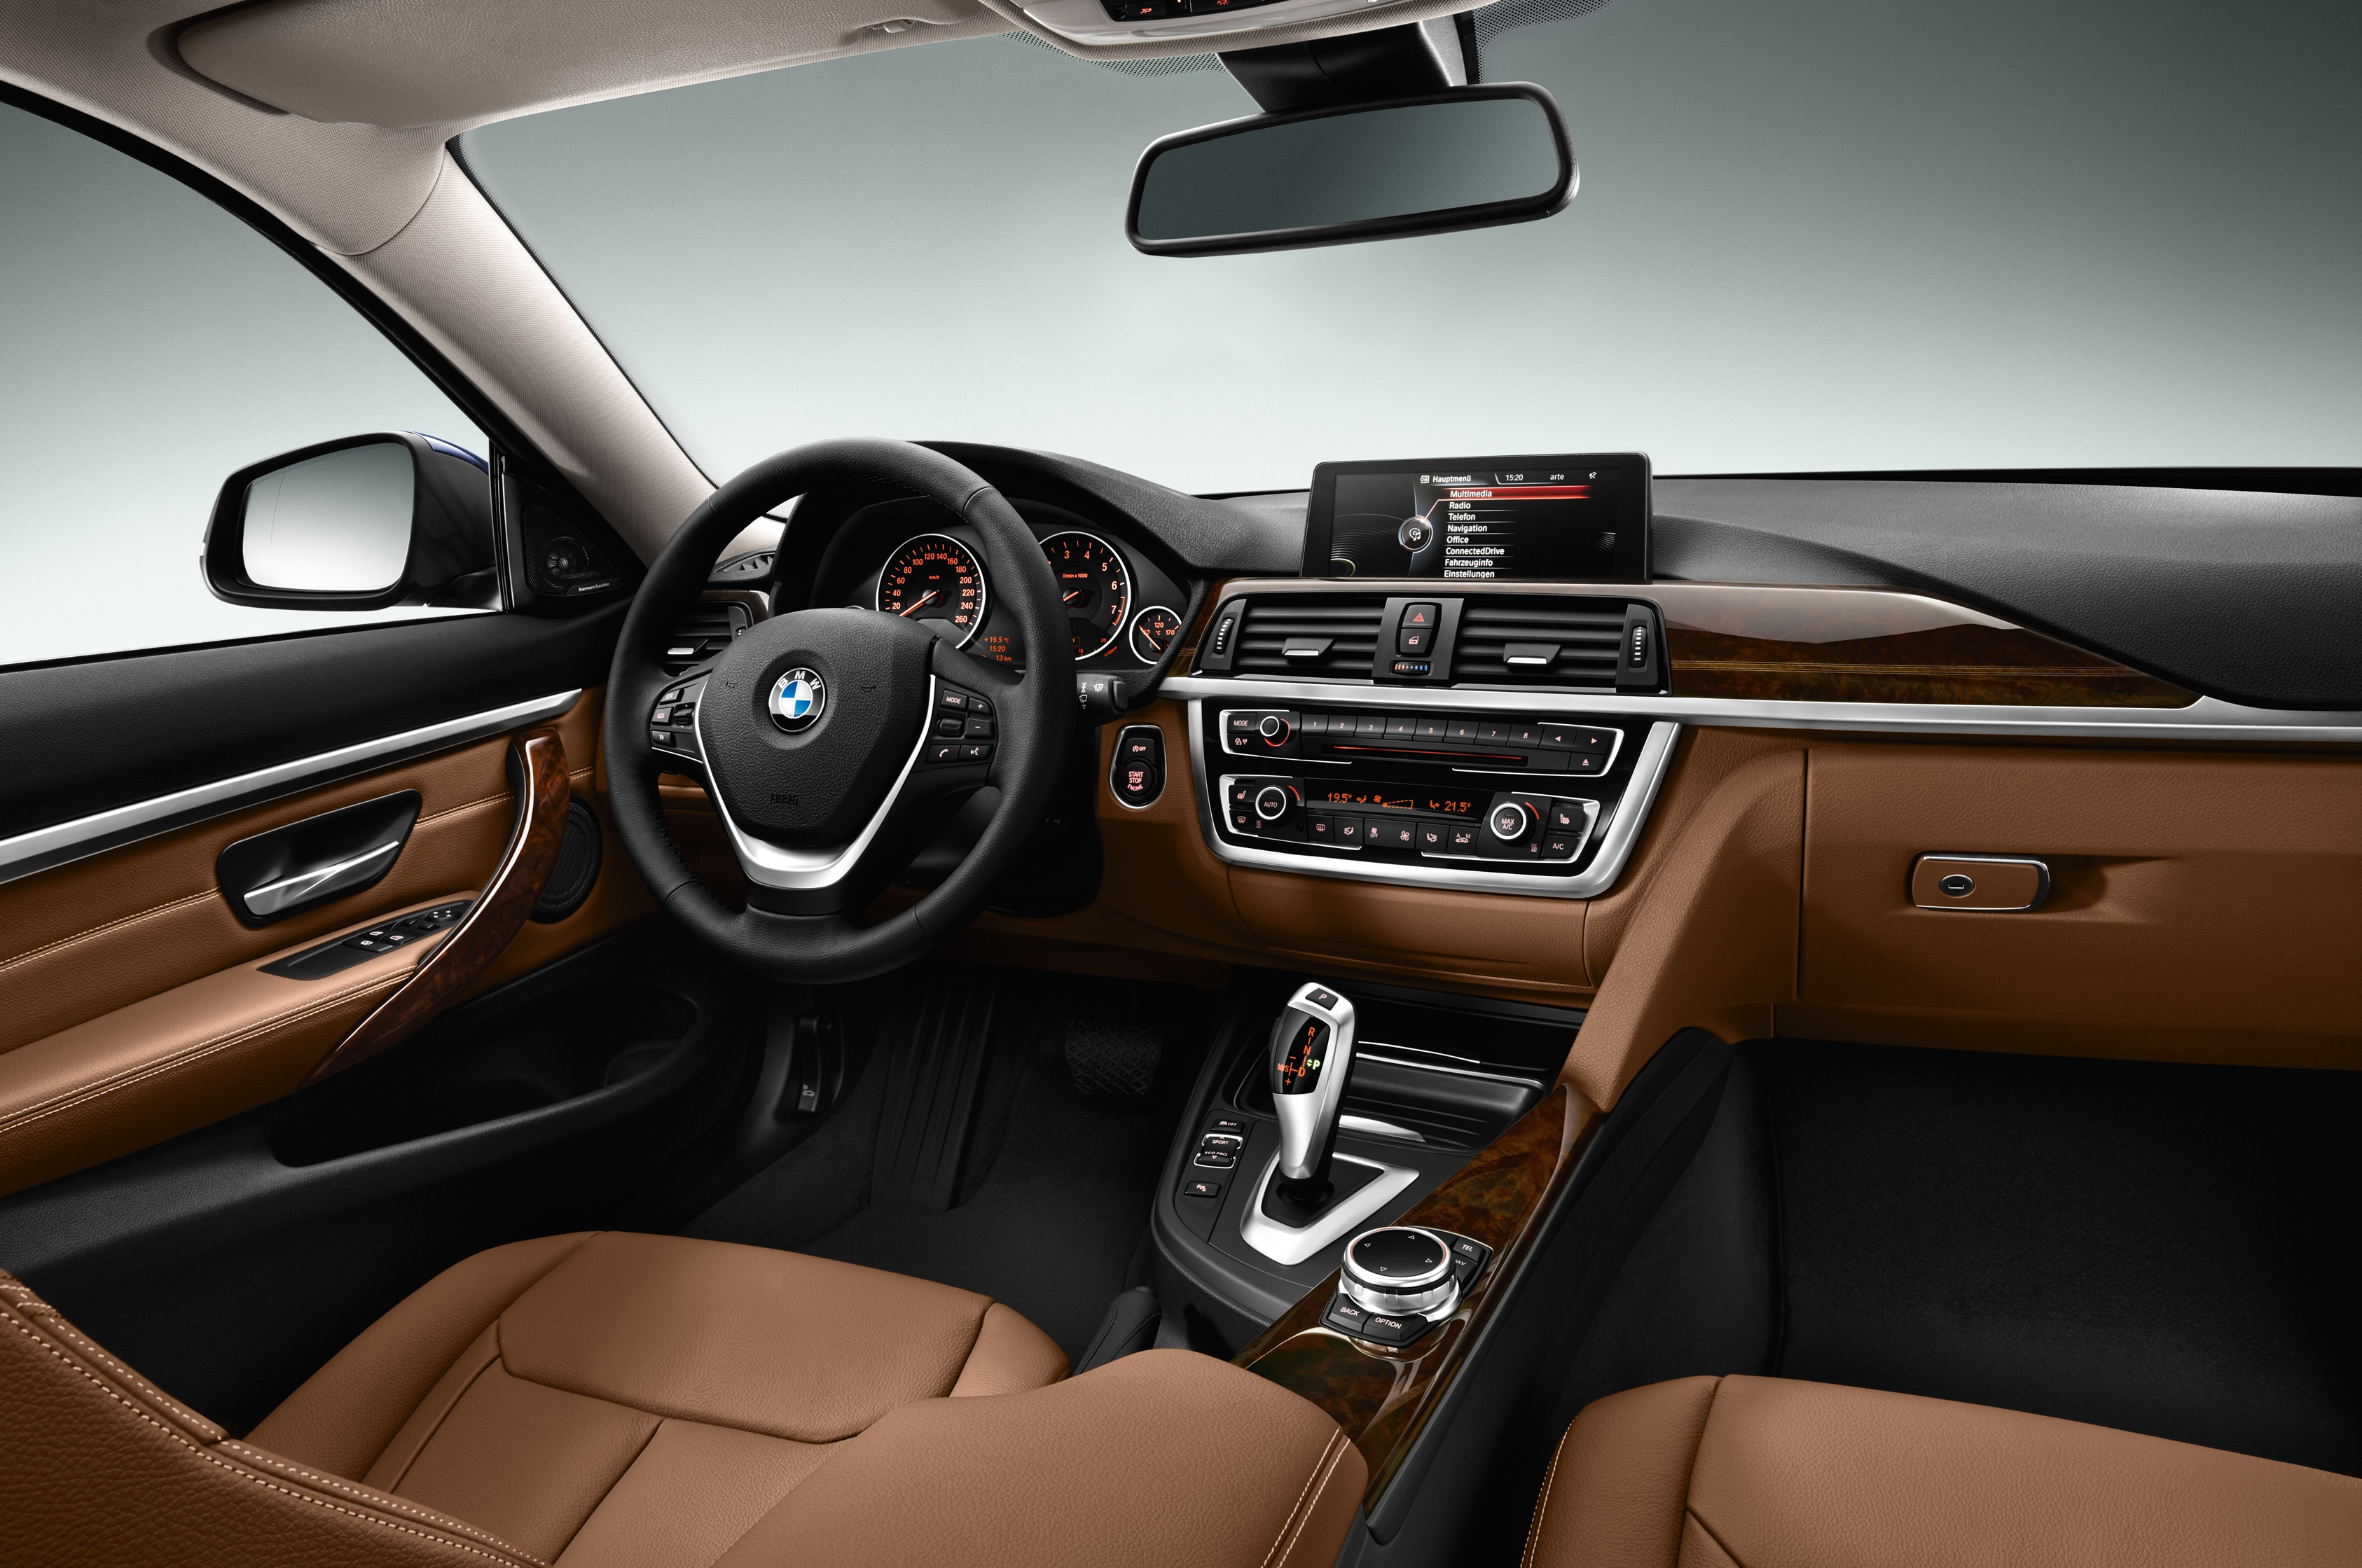 2014 bmw 4 series build your own feature available joseph capparella sciox Choice Image